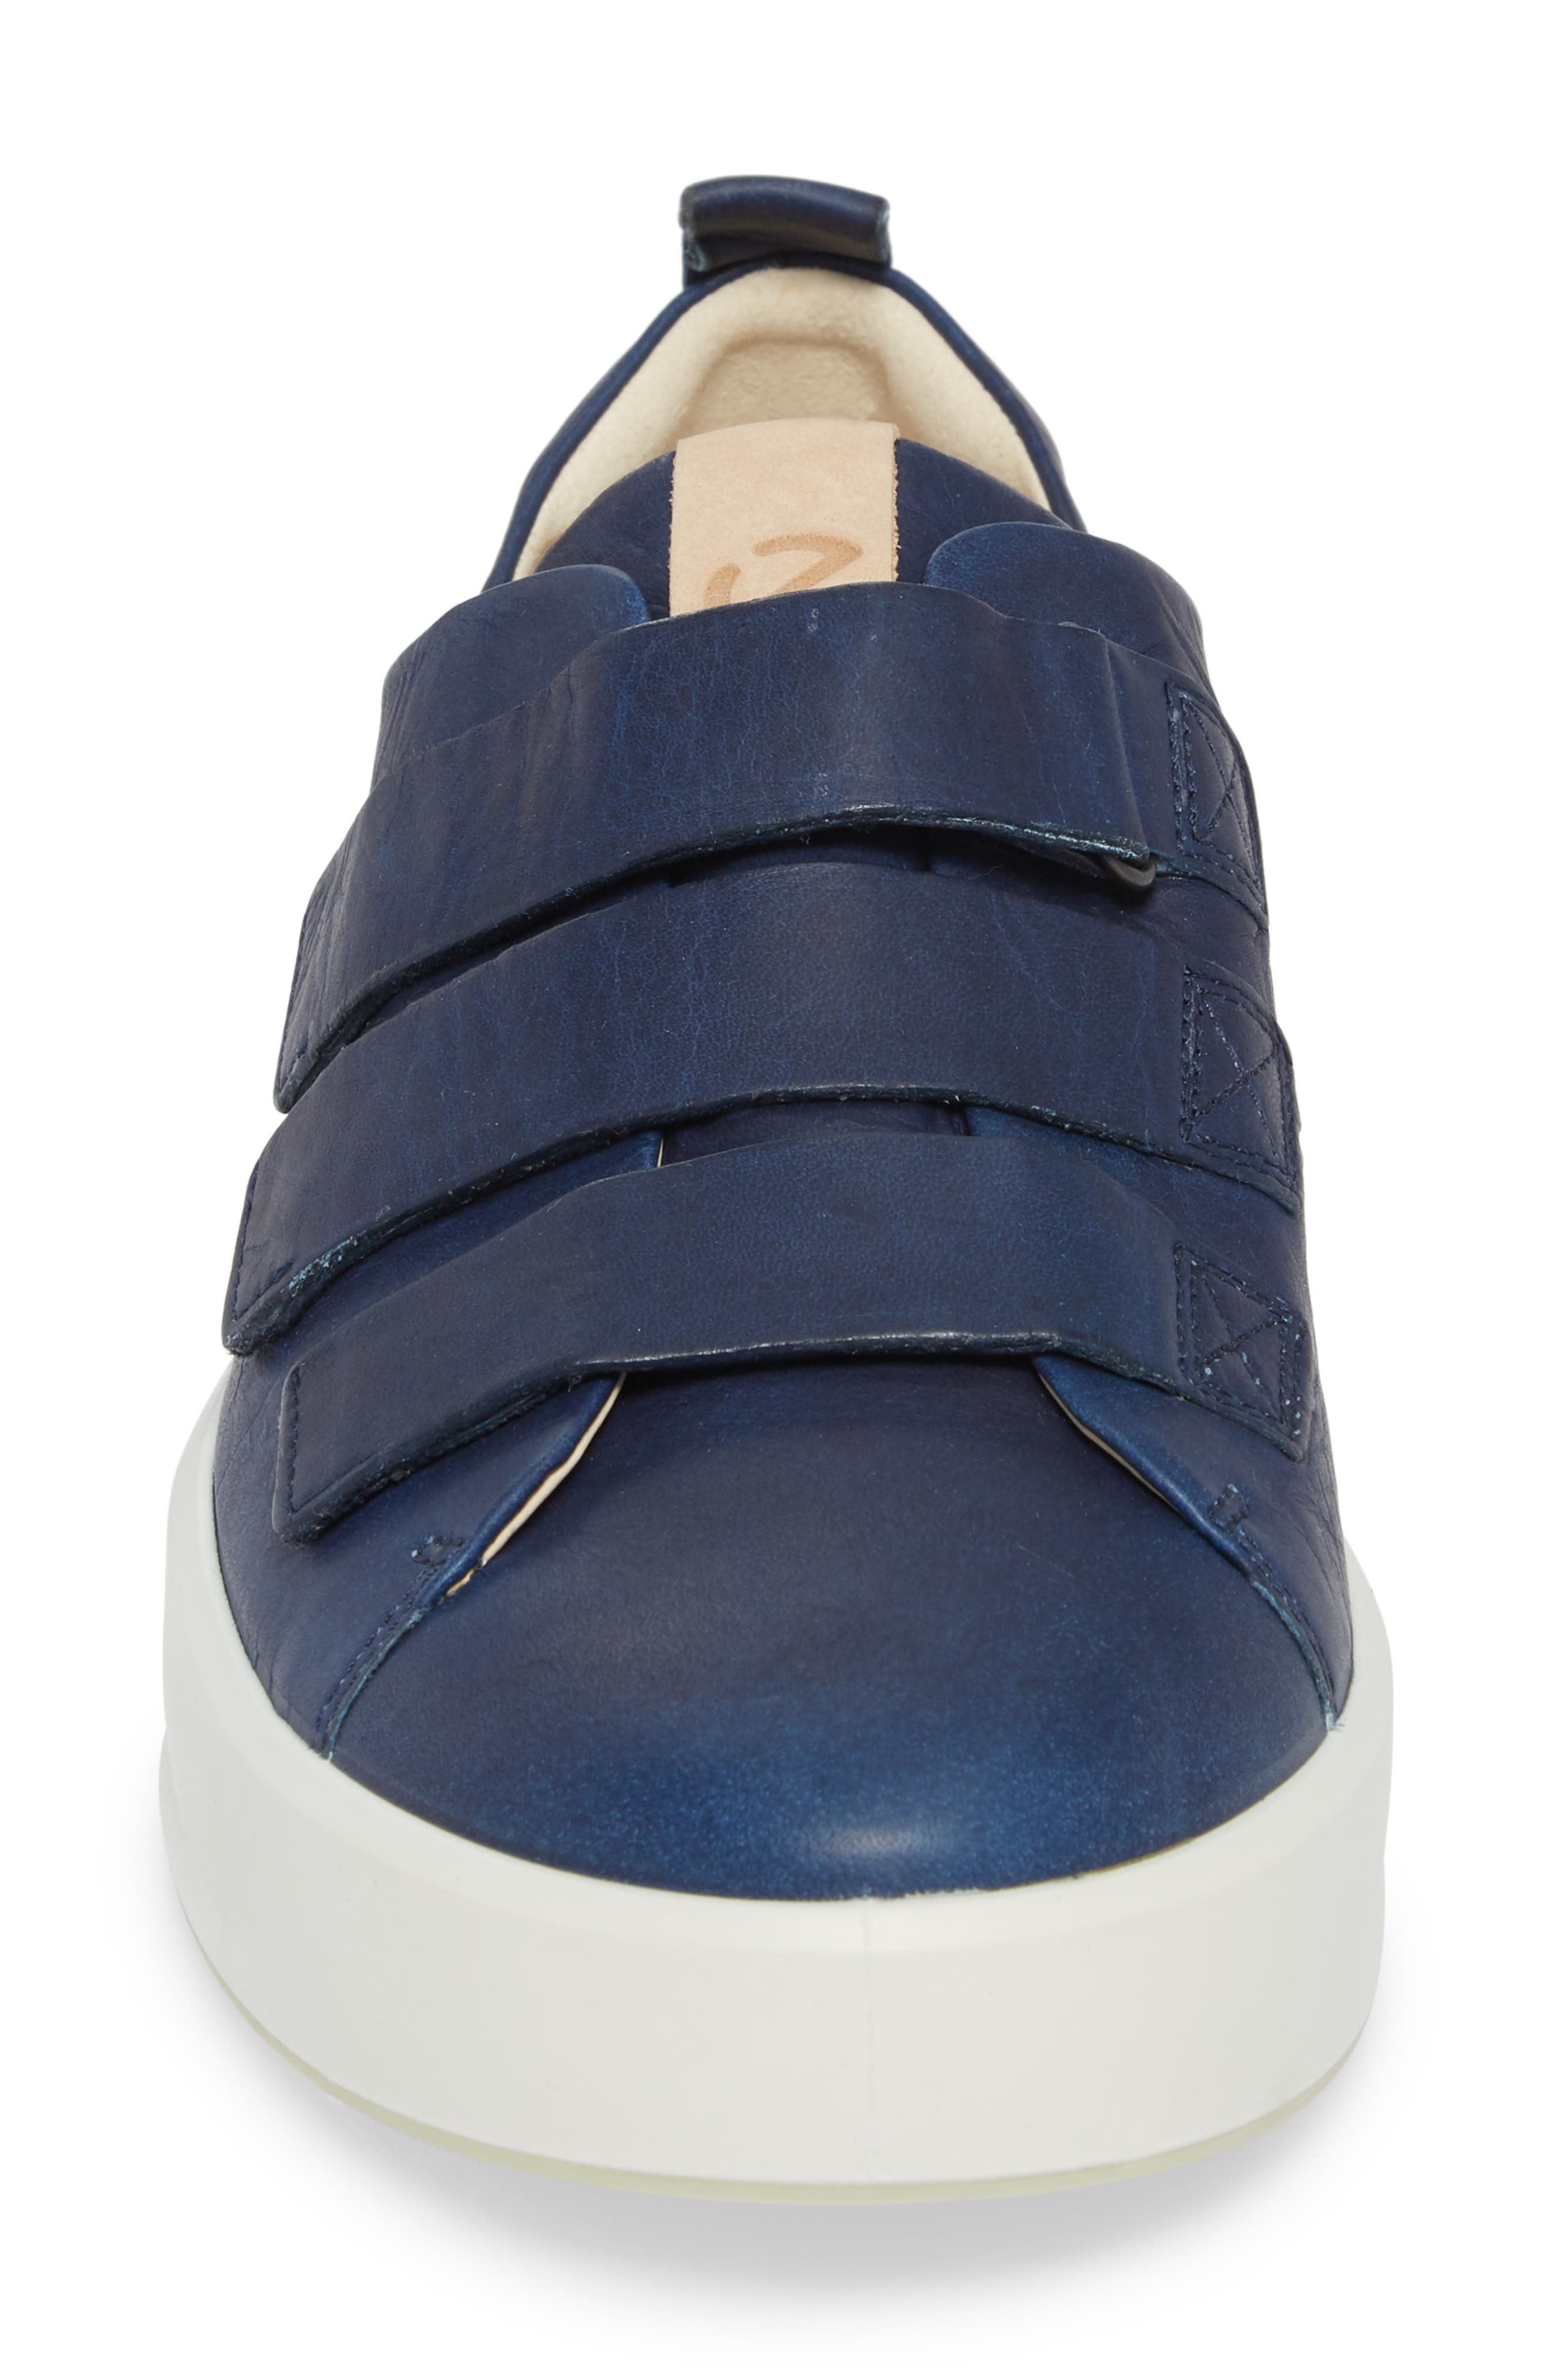 Soft 8 Strap Sneaker,                             Alternate thumbnail 4, color,                             Indigo 7 Leather